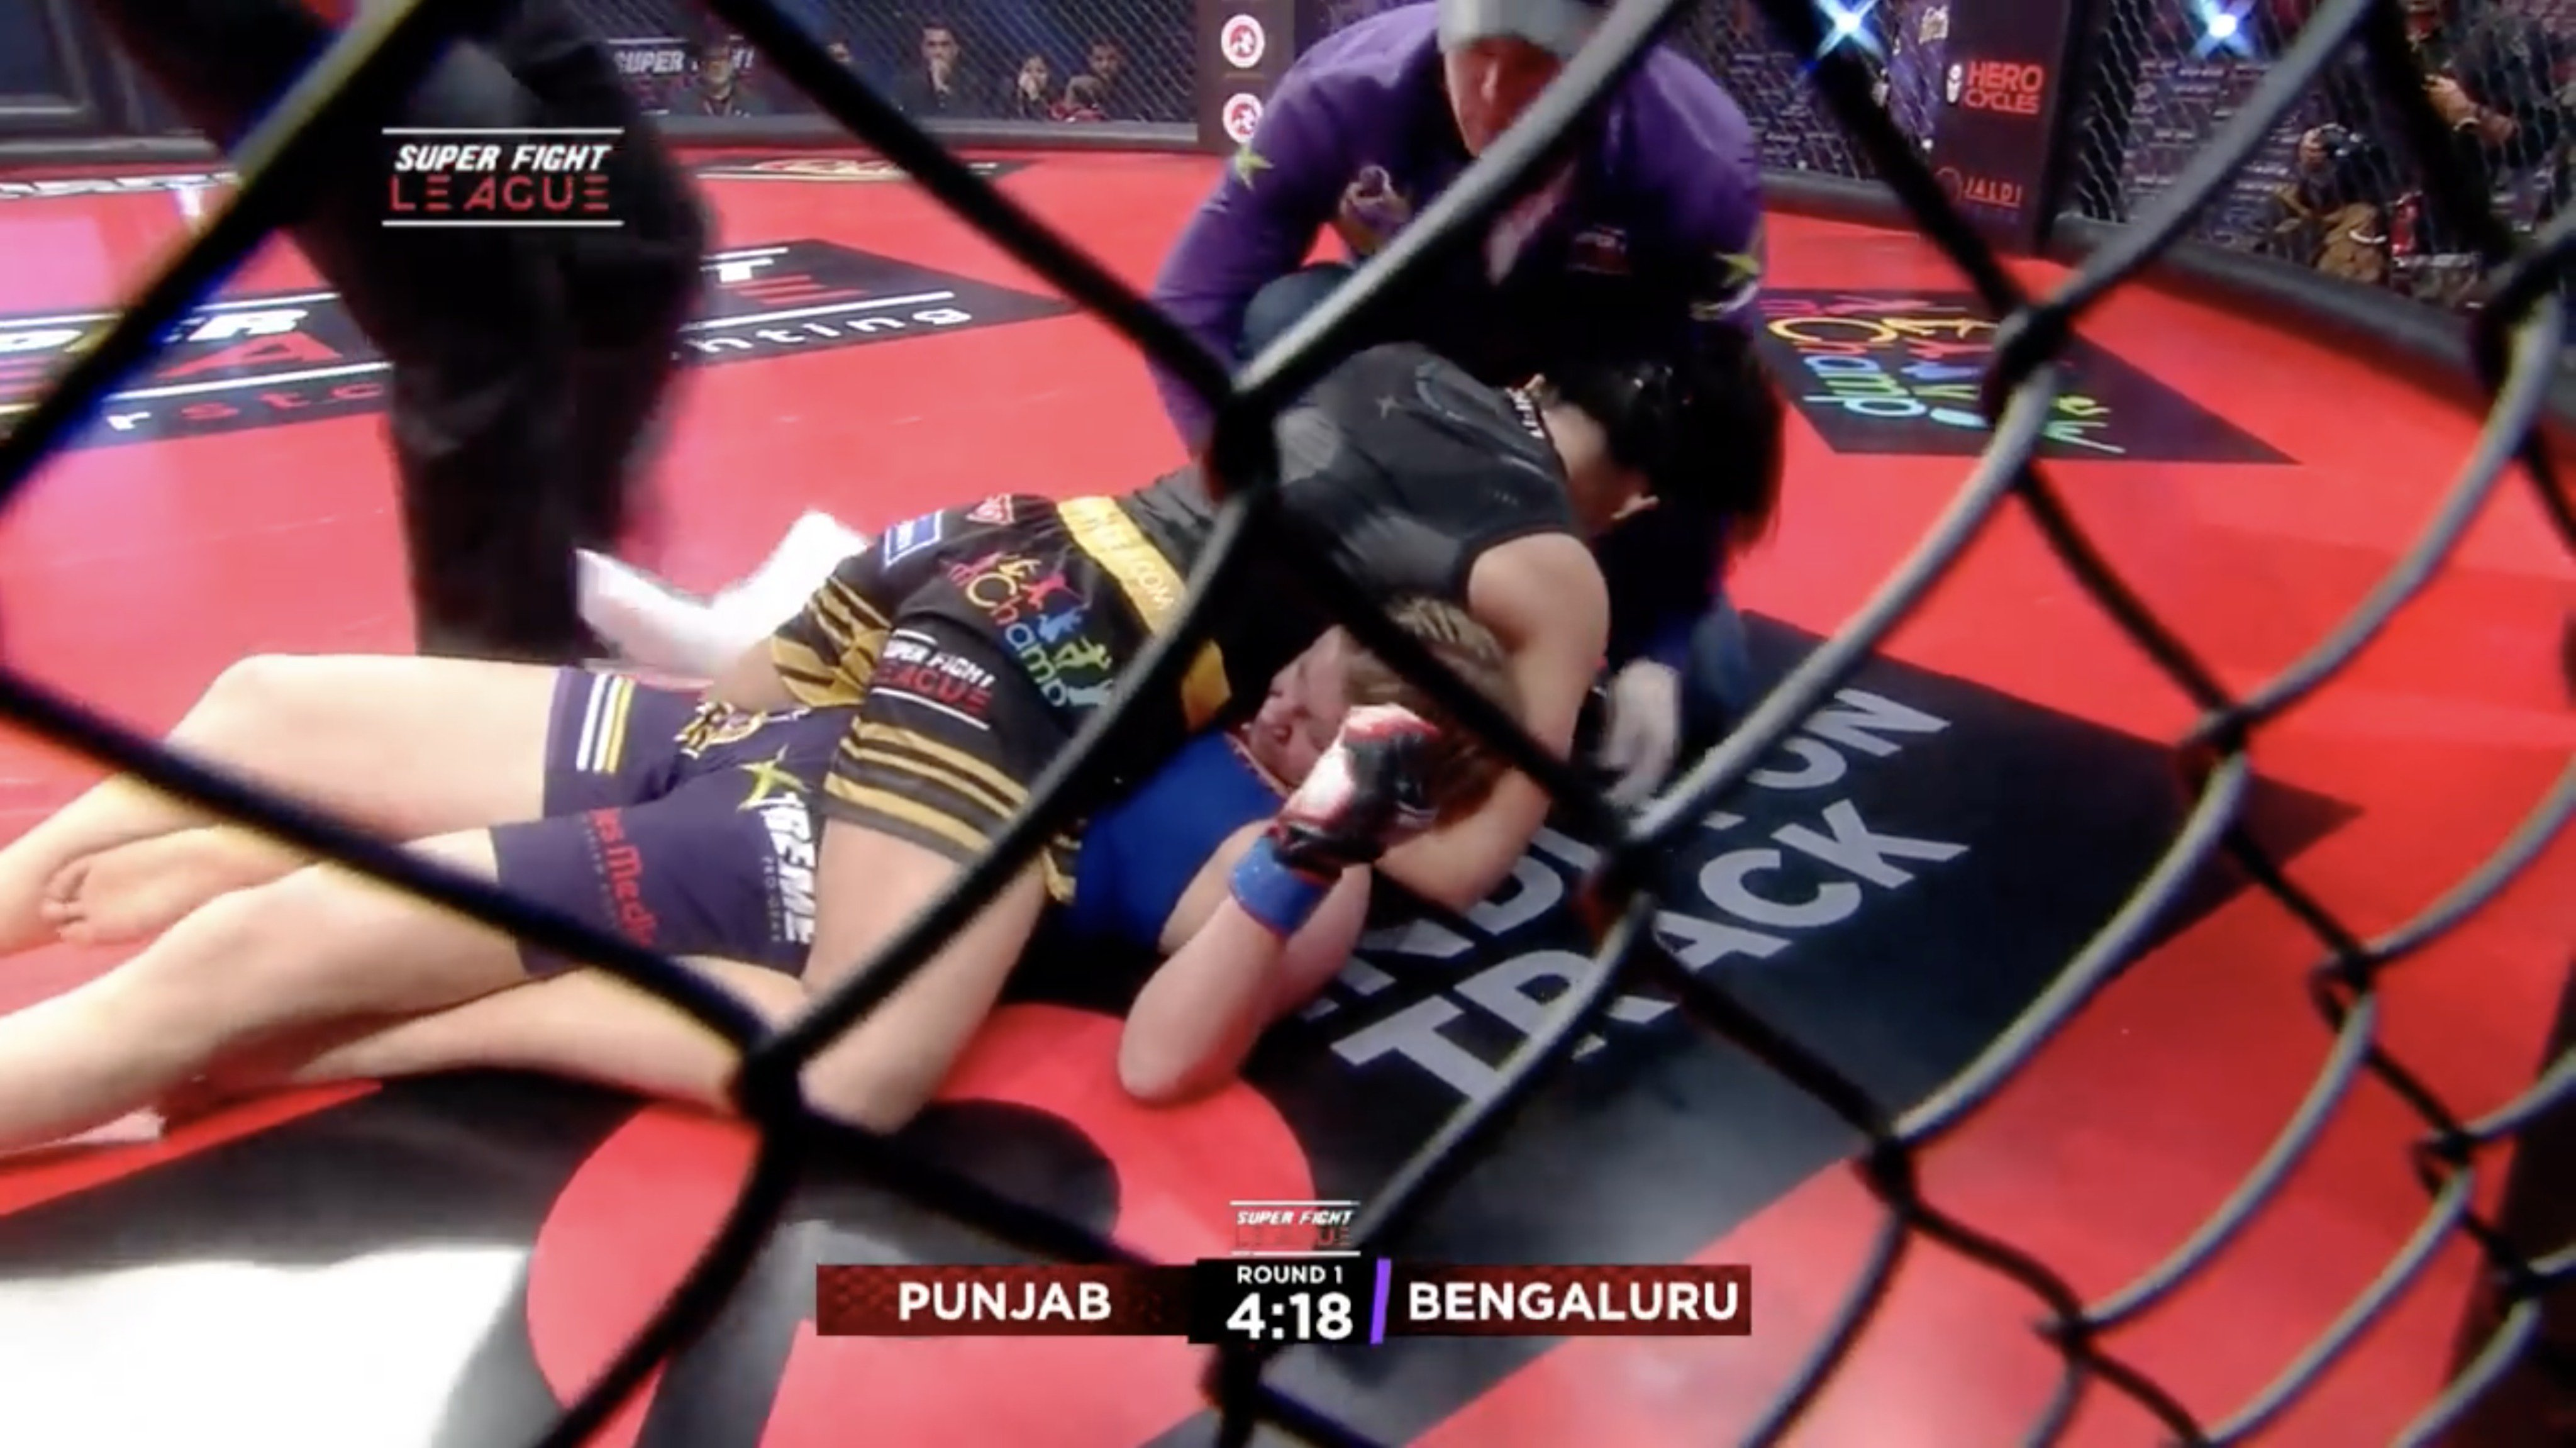 Cornerman enters cage, stops fight after referee misses guillotine choke